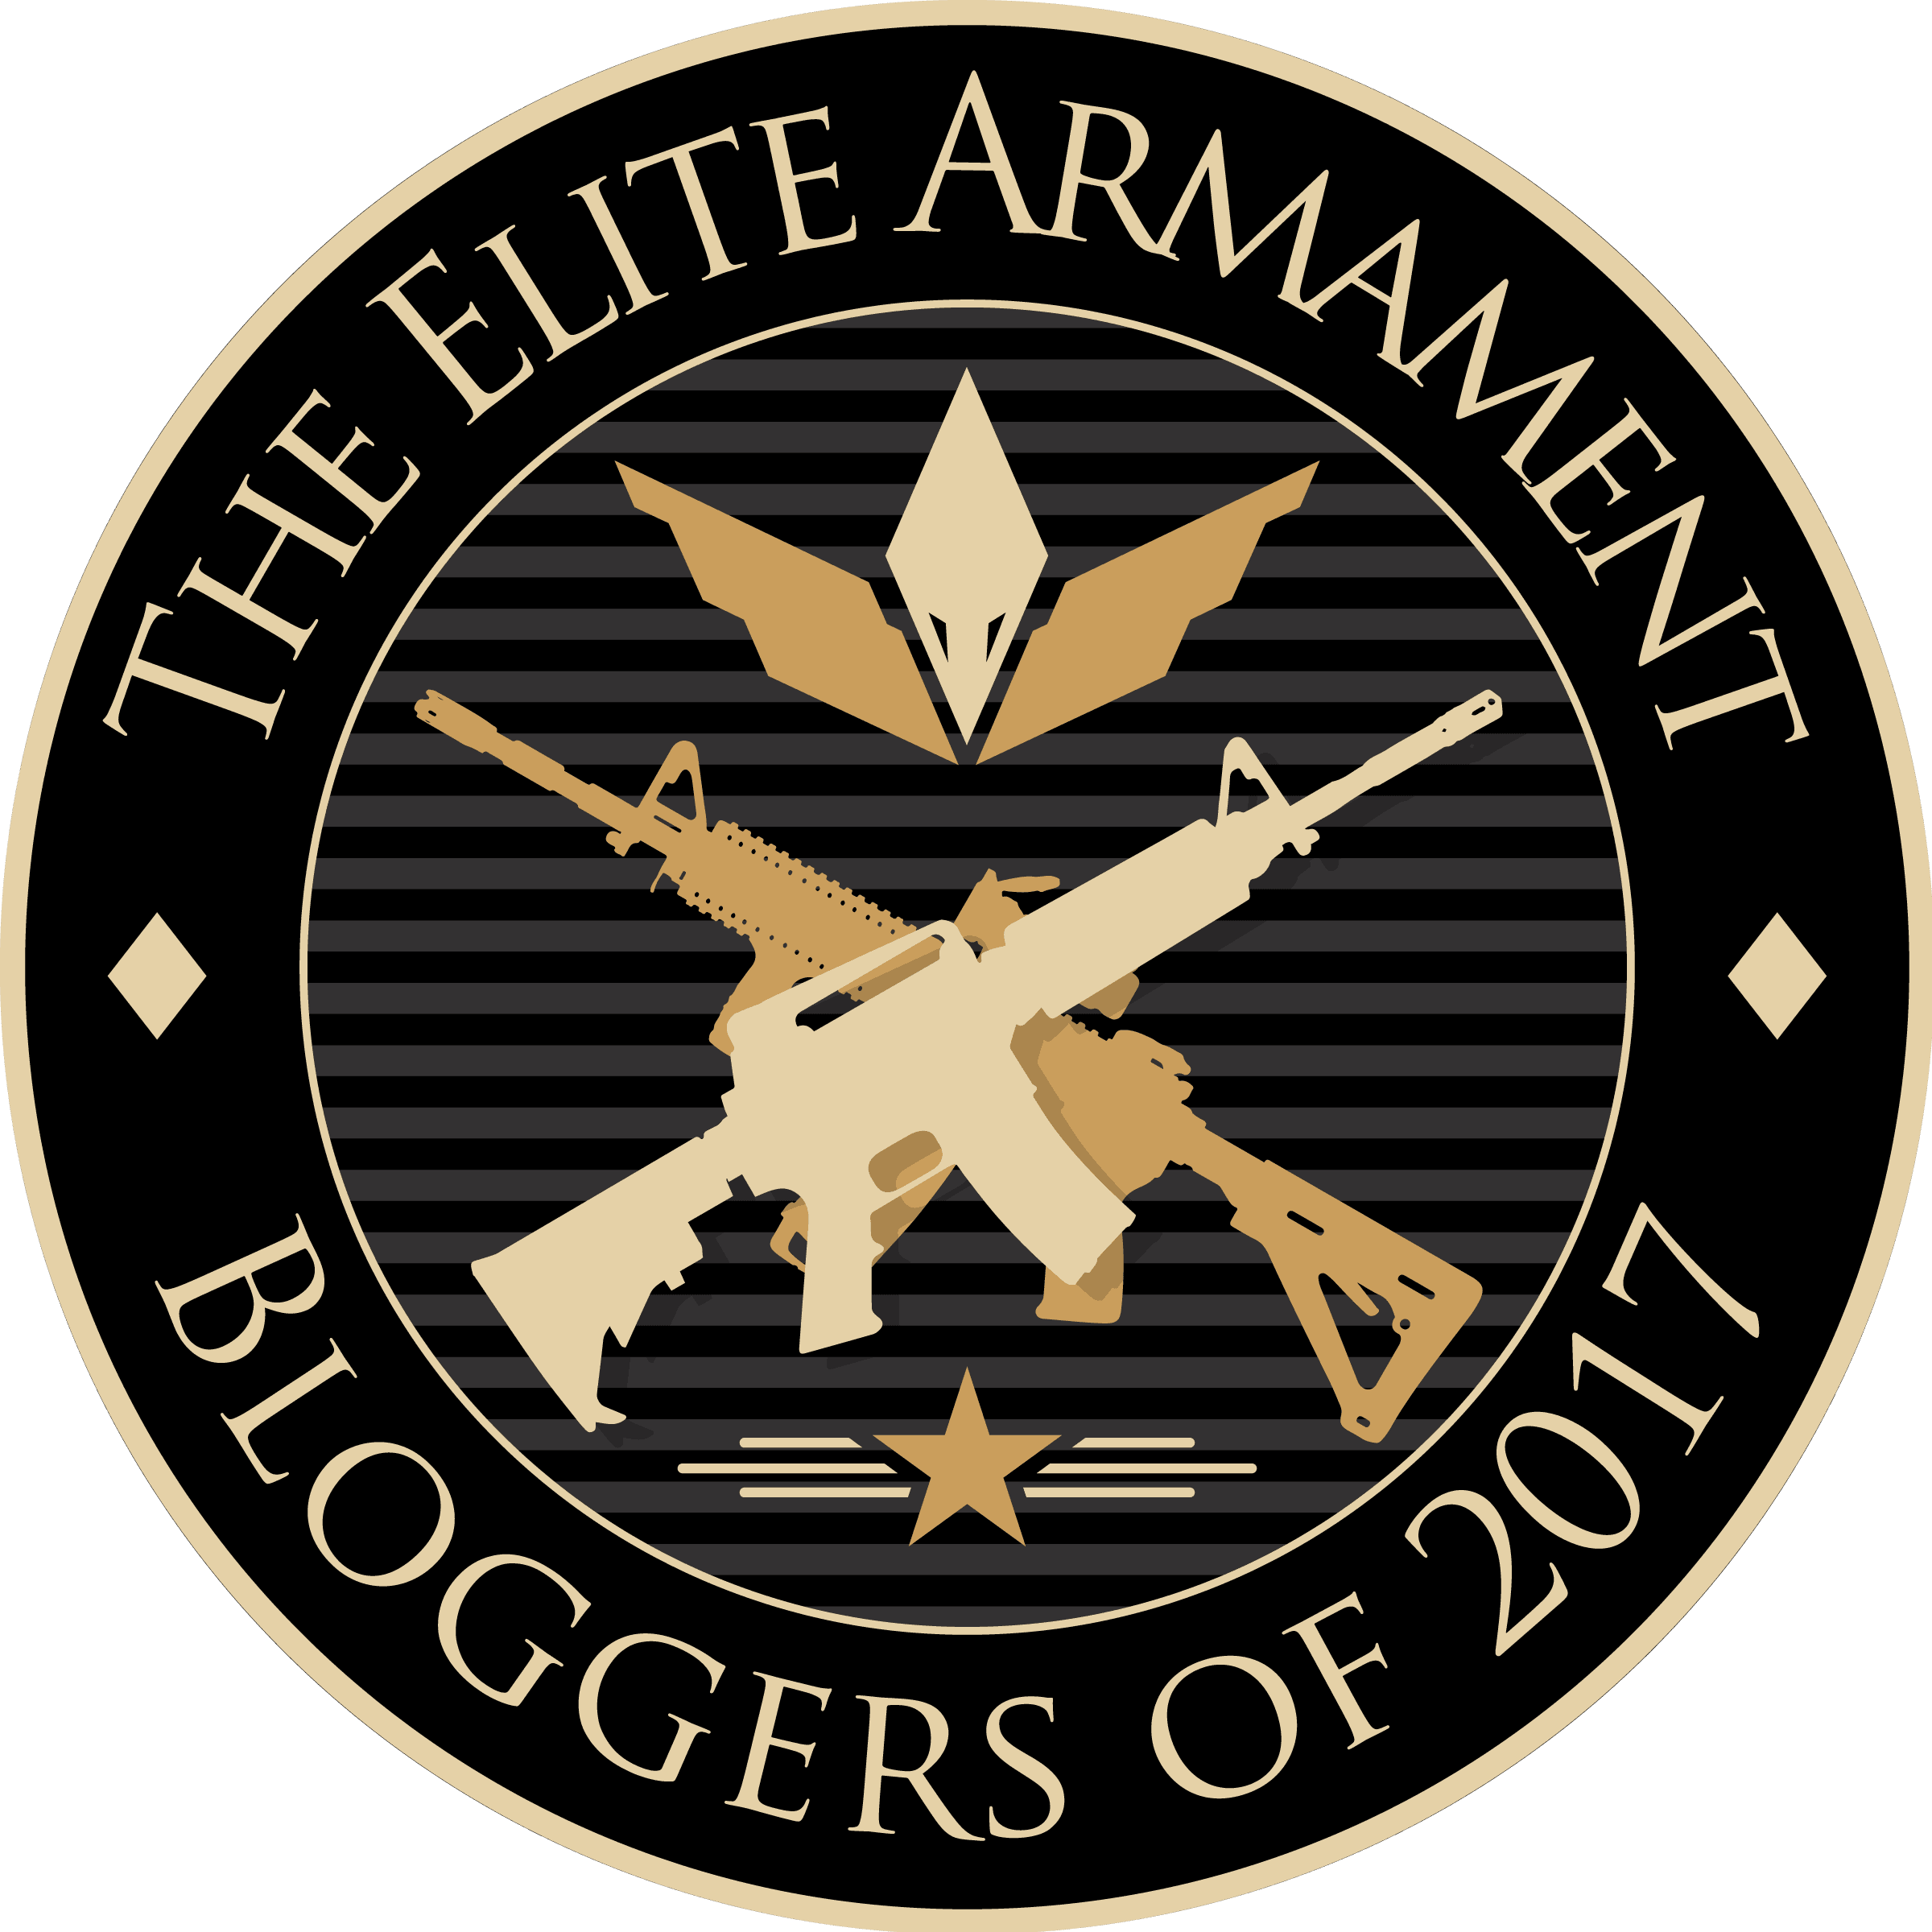 The Elite Armament Bloggers